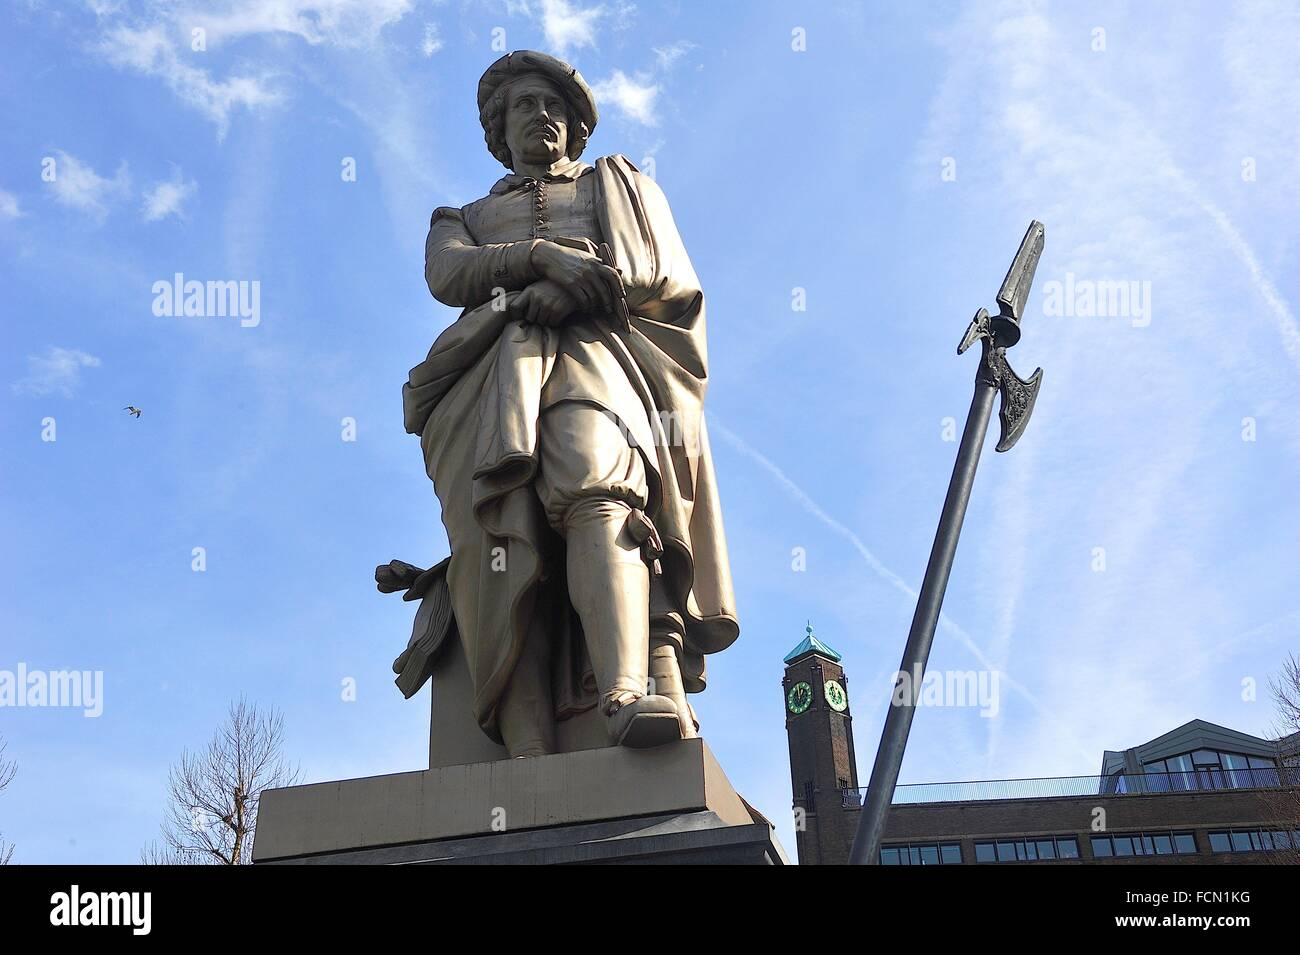 Statue of Rembrandt, by Louis Royer, XIXth century, in the Rembrandtplein Rembrandt Square. Amsterdam, Netherlands - Stock Image